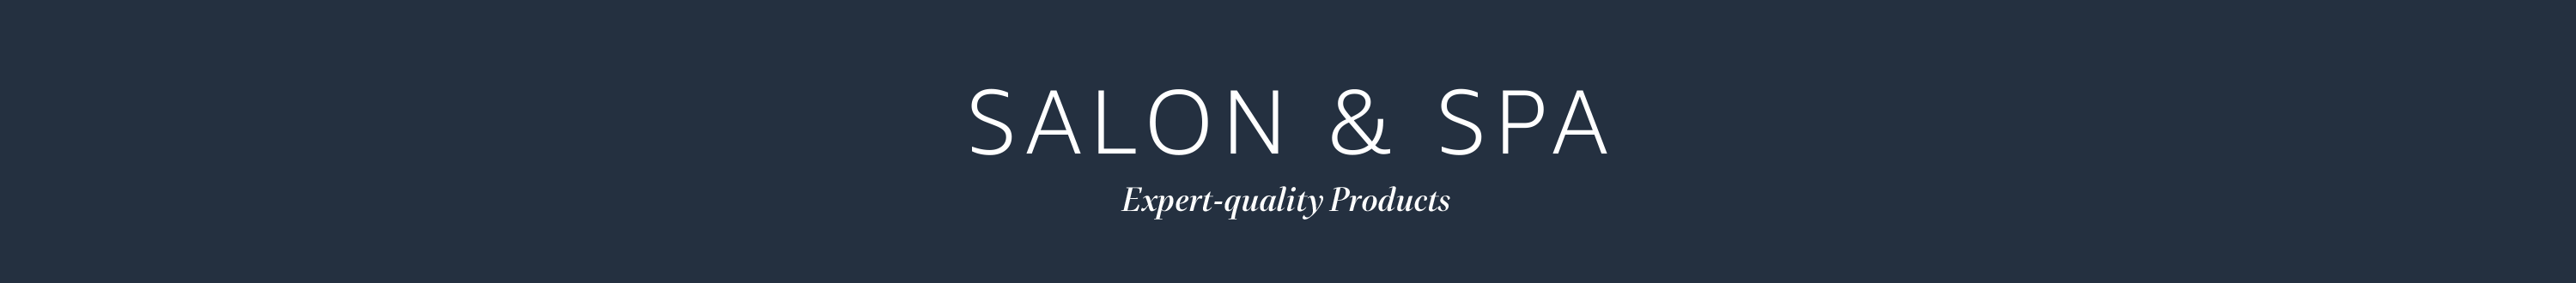 Salon and Spa Quality products sold by Amazon